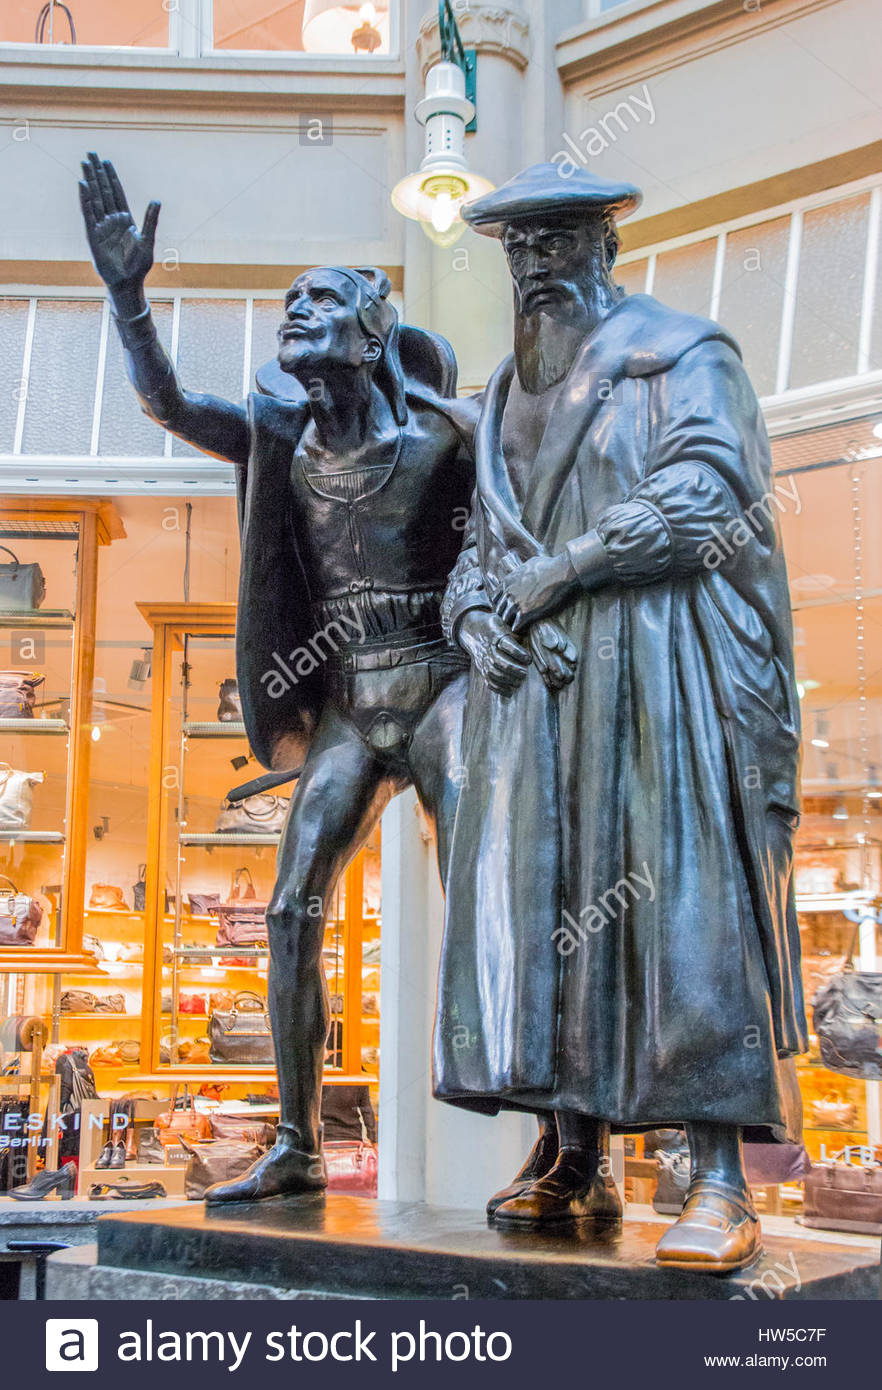 Cards on the table mathistopheles - Mephistopheles And Faust Bronze Statue Stock Image